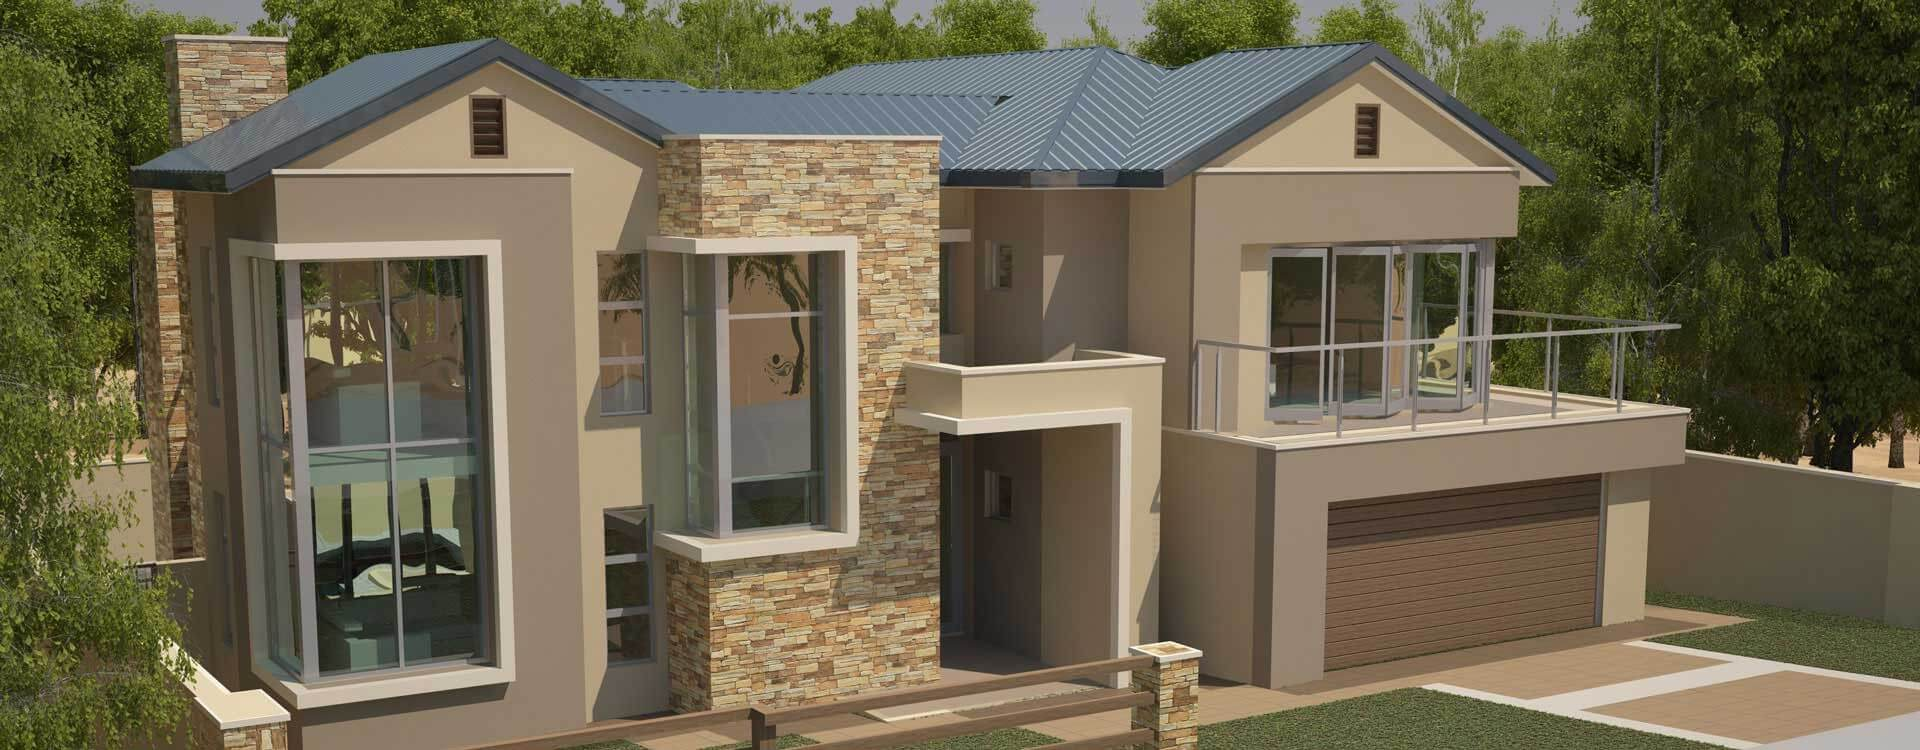 Superior Modern Contemporary Style, House Plans, 4 Bedroom, Double Storey Floor  Plans, Modern